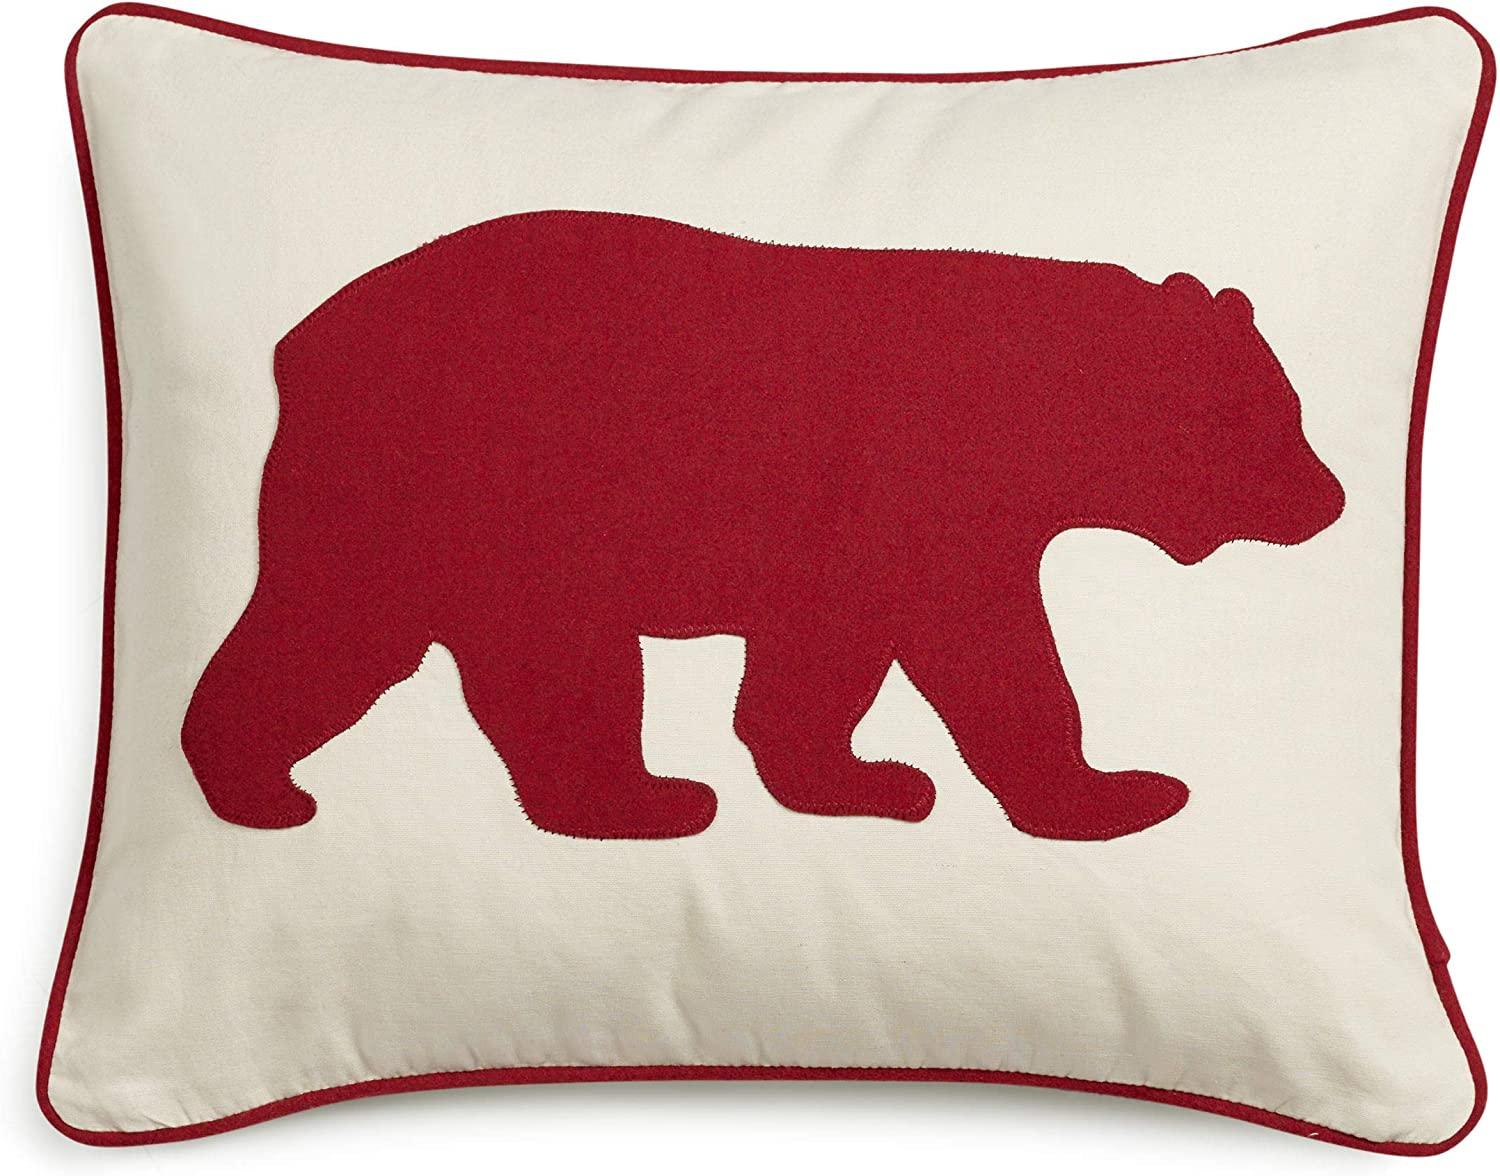 "Eddie Bauer | Home Collection | 100% Cotton Twill Signature Bear Design Decorative Pillow, Zipper Closure, Easy Care Machine Washable, 16"" x 20"", Red"